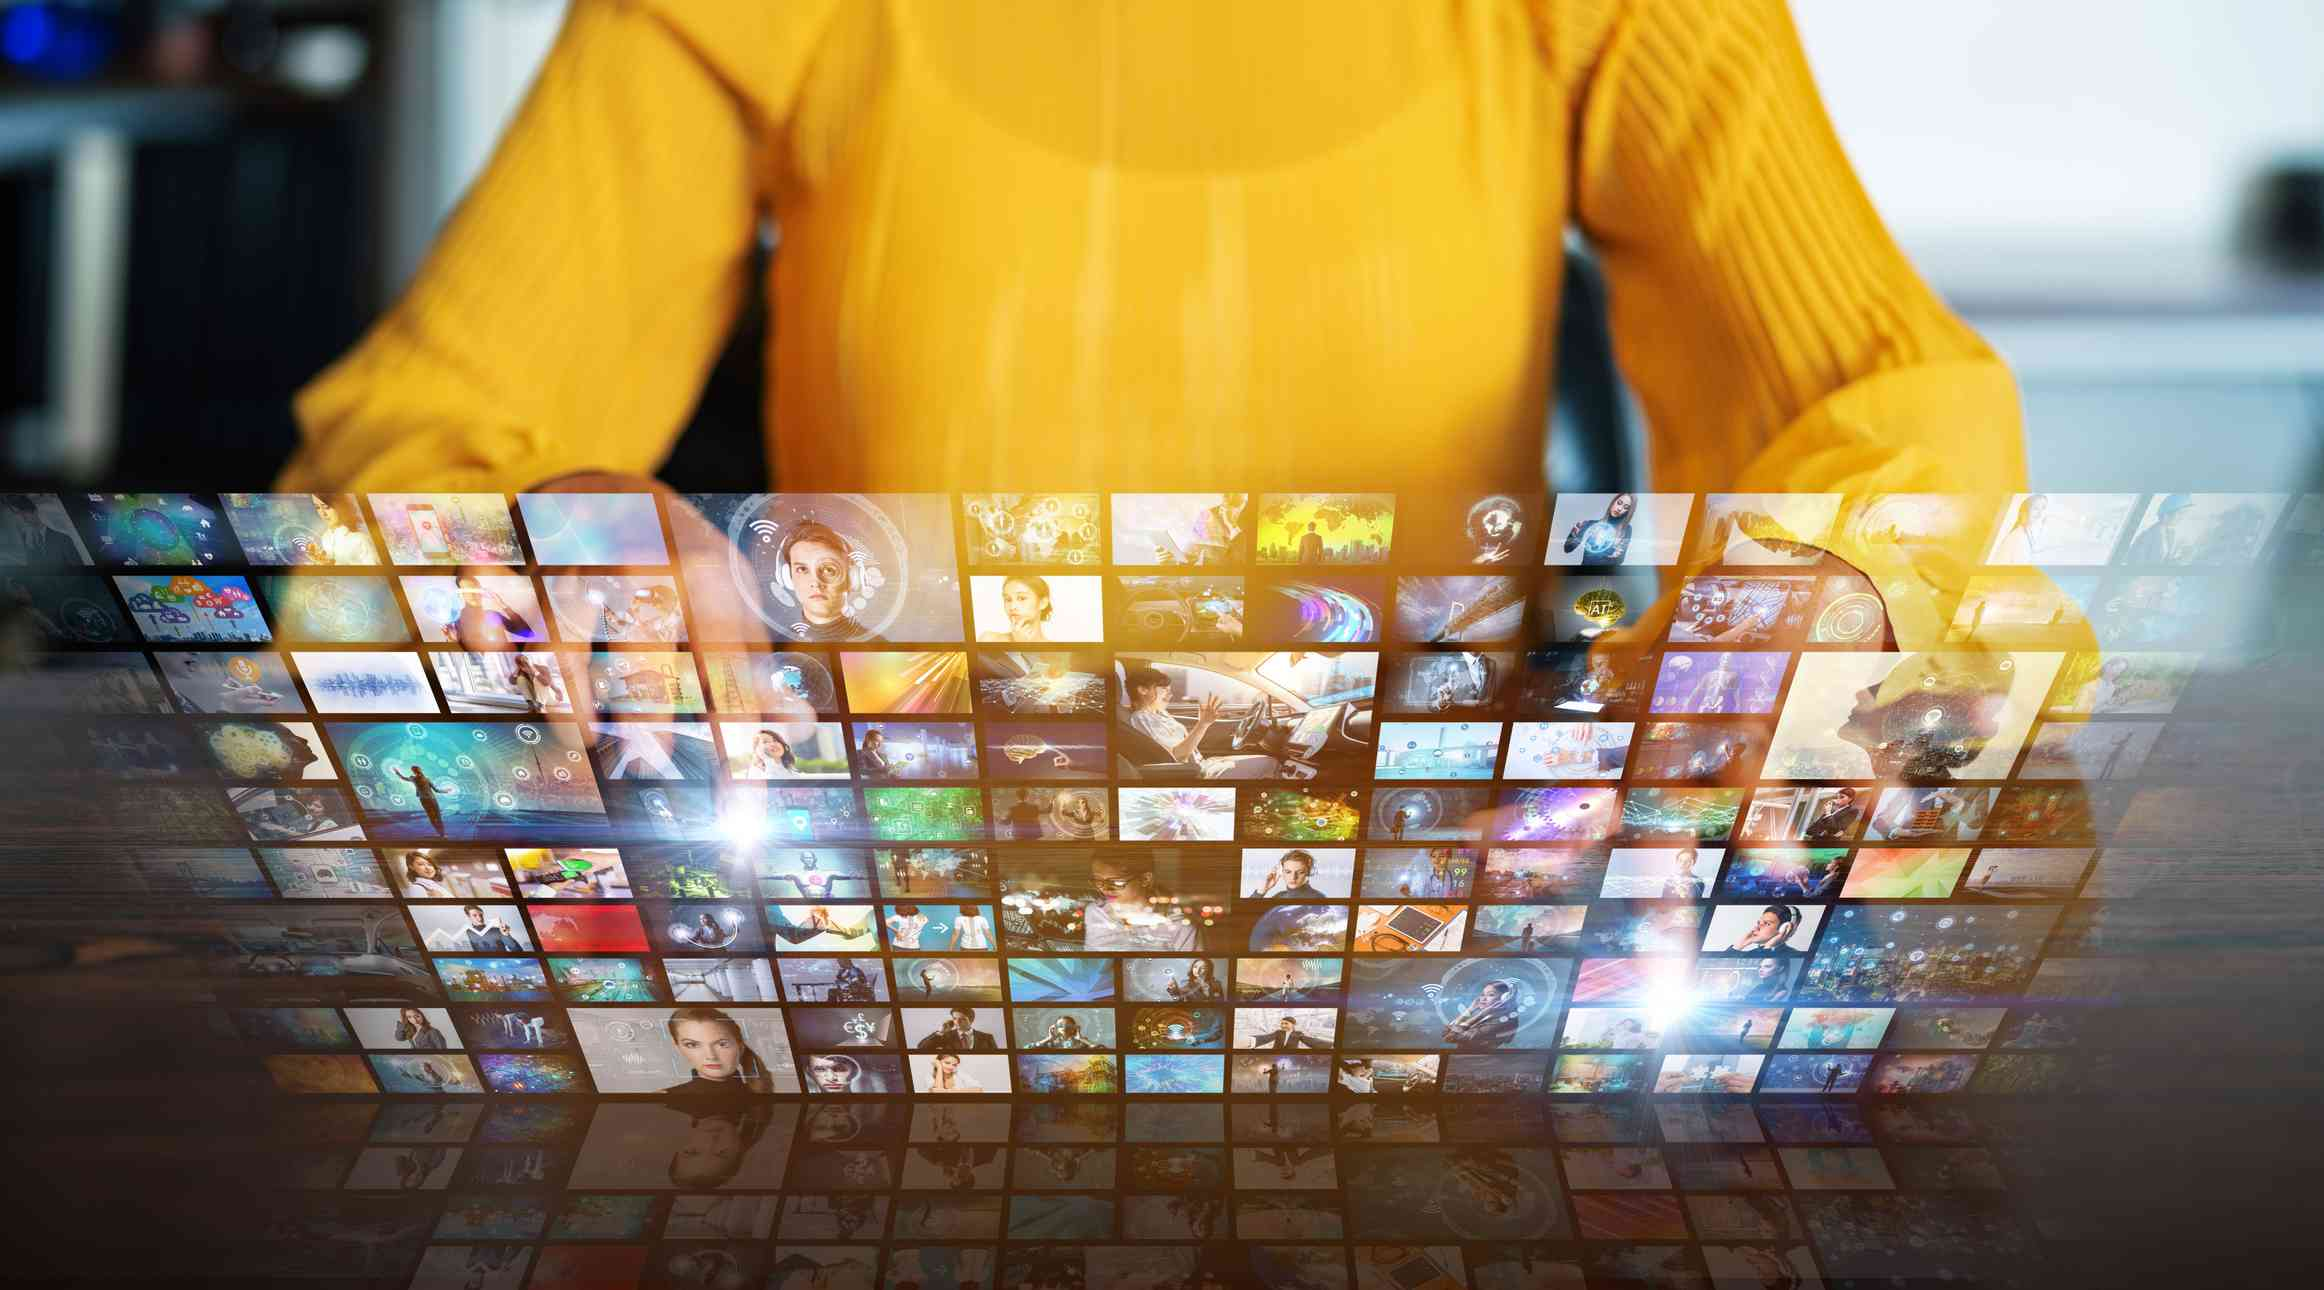 A concept image of someone browsing TV channels on a virtual screen.